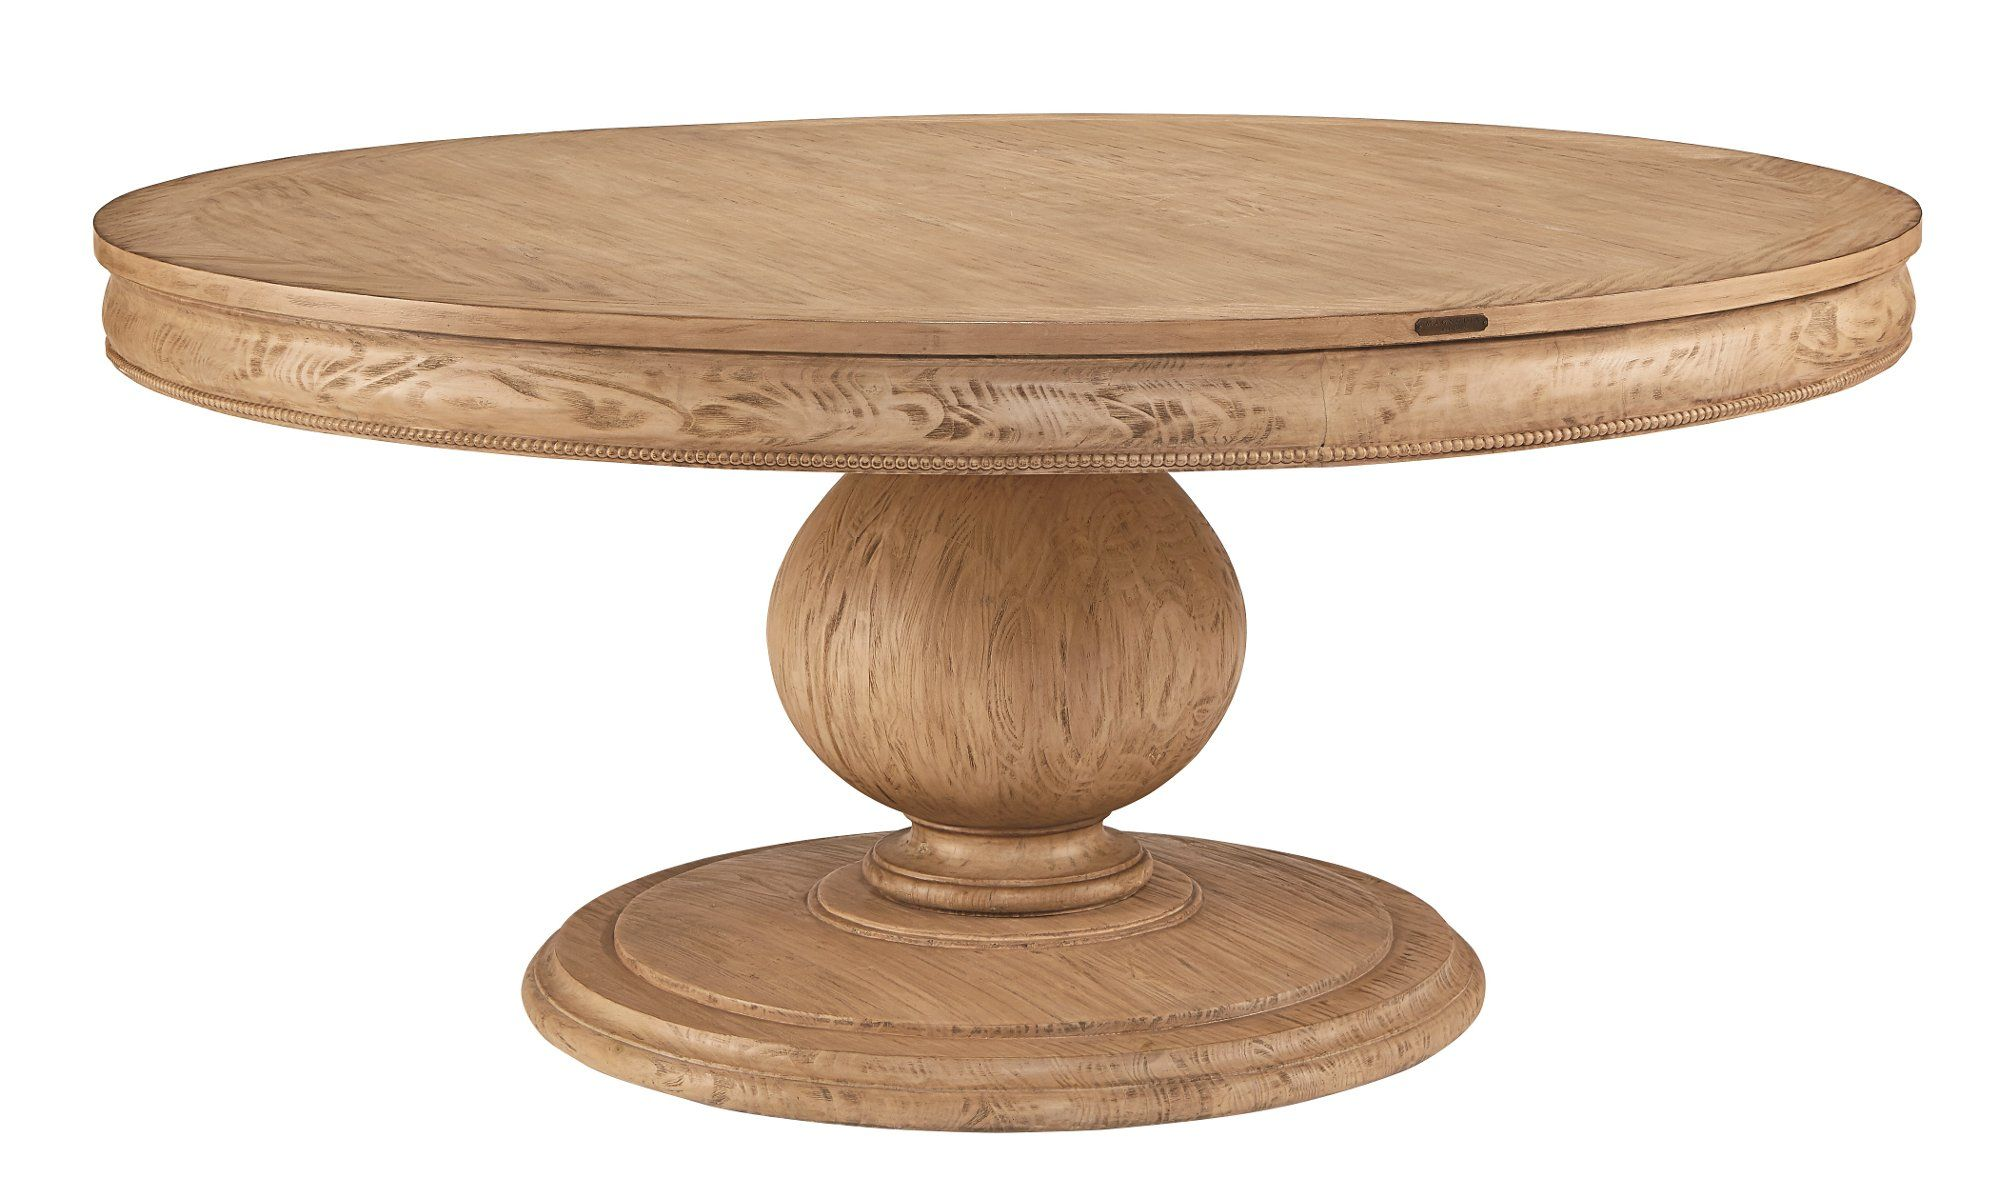 Magnolia Home Furniture Belgian Breakfast Table Rc Willey Furniture Store In 2021 Joanna Gaines Dining Room Round Pedestal Dining Table Dining Room Table [ 1178 x 2000 Pixel ]